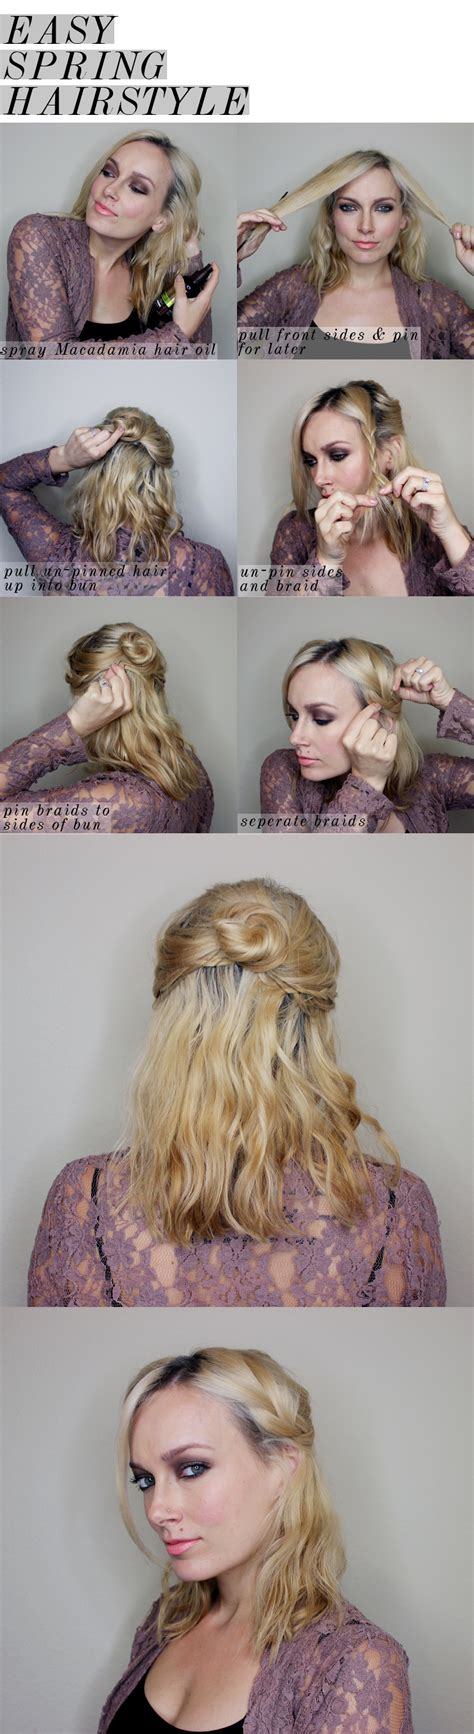 HD wallpapers cute professional hairstyles for long hair